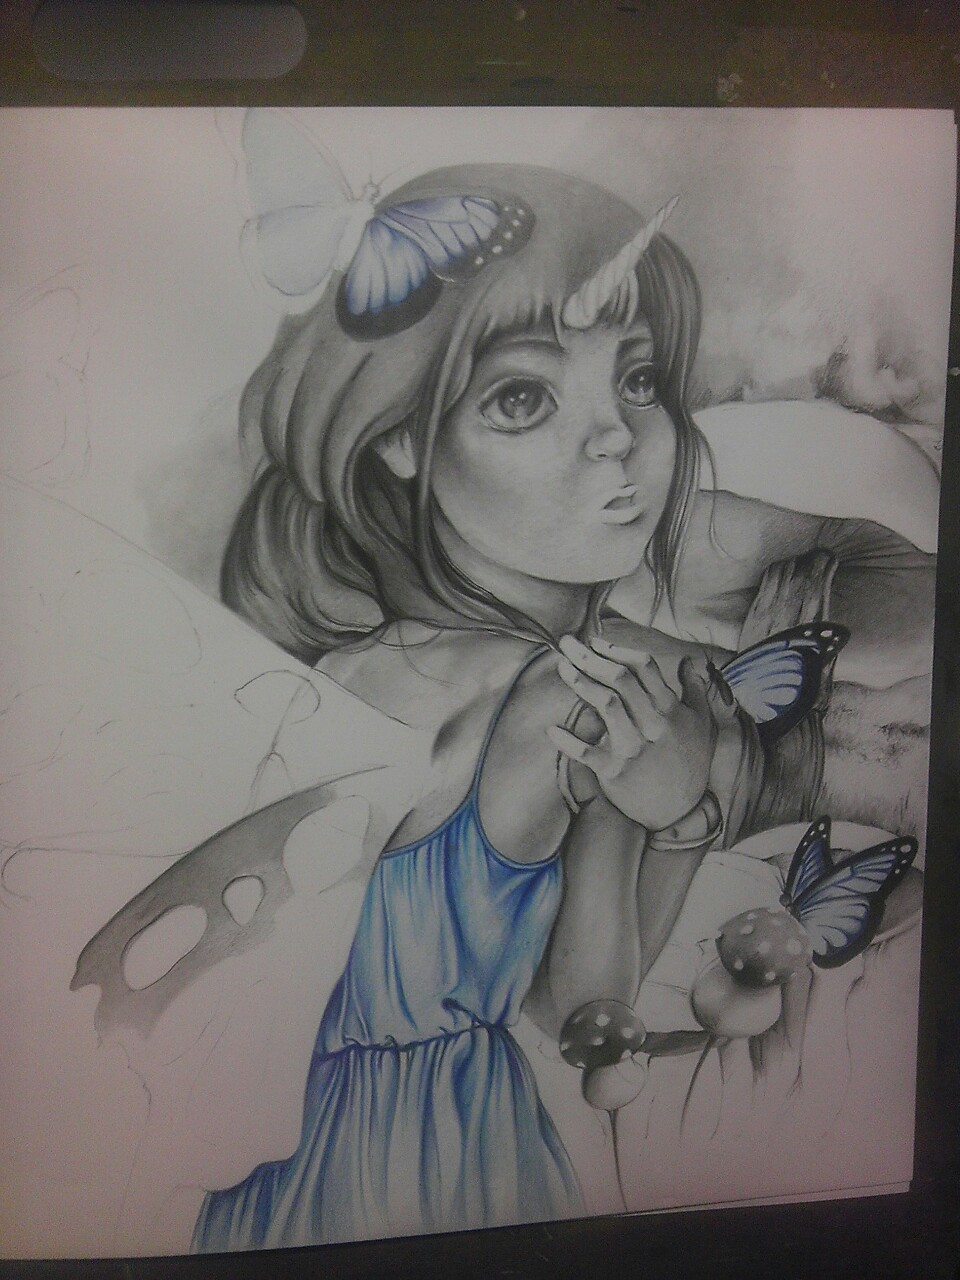 More progress on my drawing :)